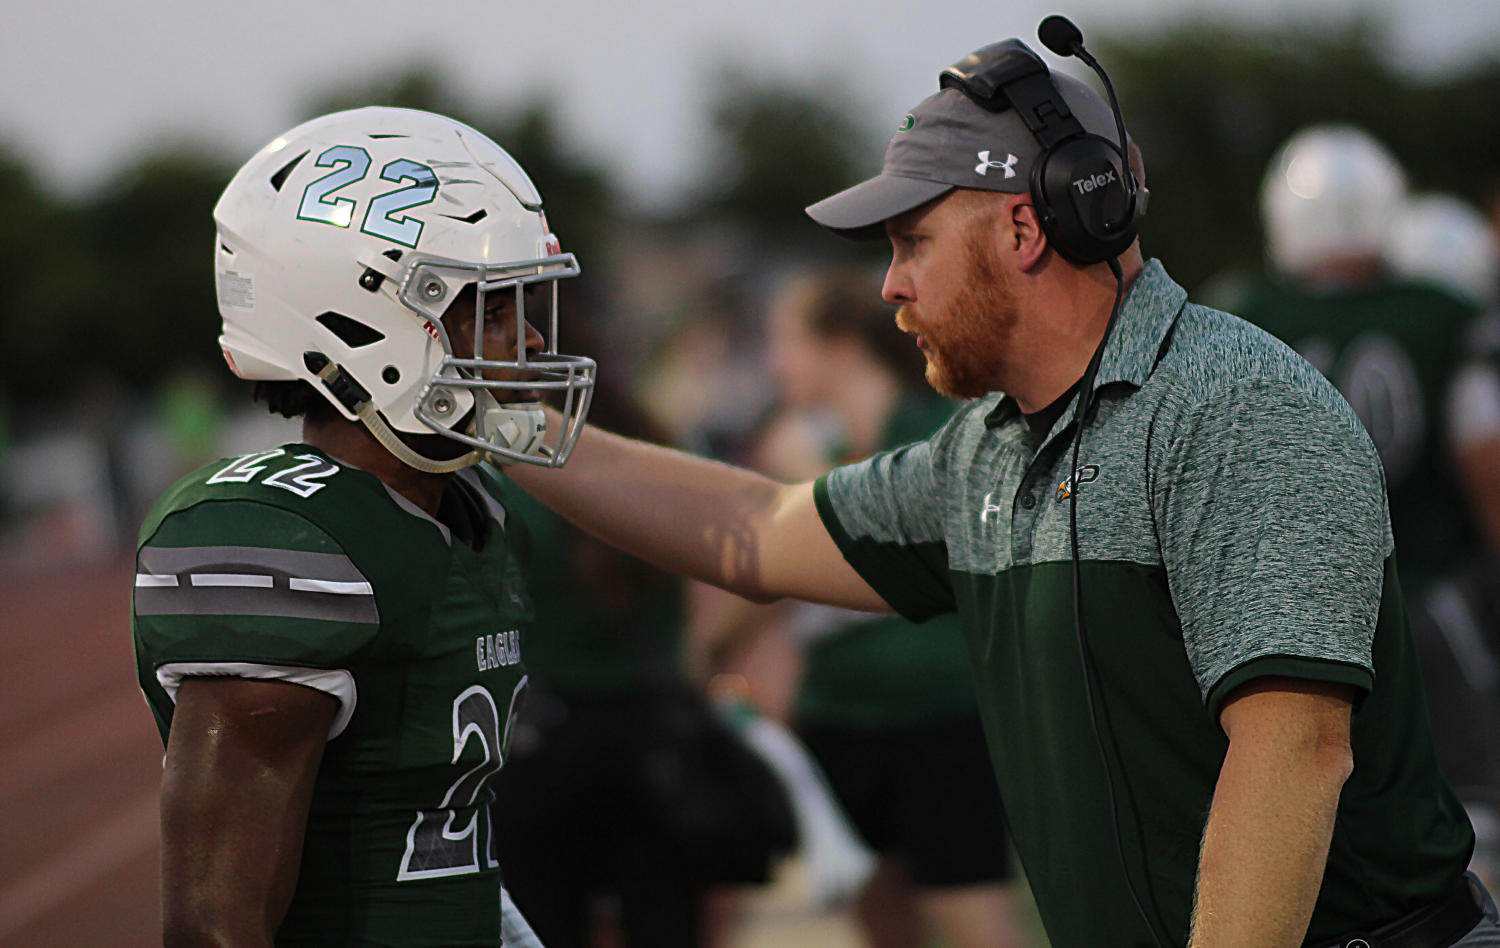 Kaleb Adams (22) talking with Coach Thompson on the sideline. Adams had a quiet night against Lake Ridge, totaling 30 yards on 13 carries.